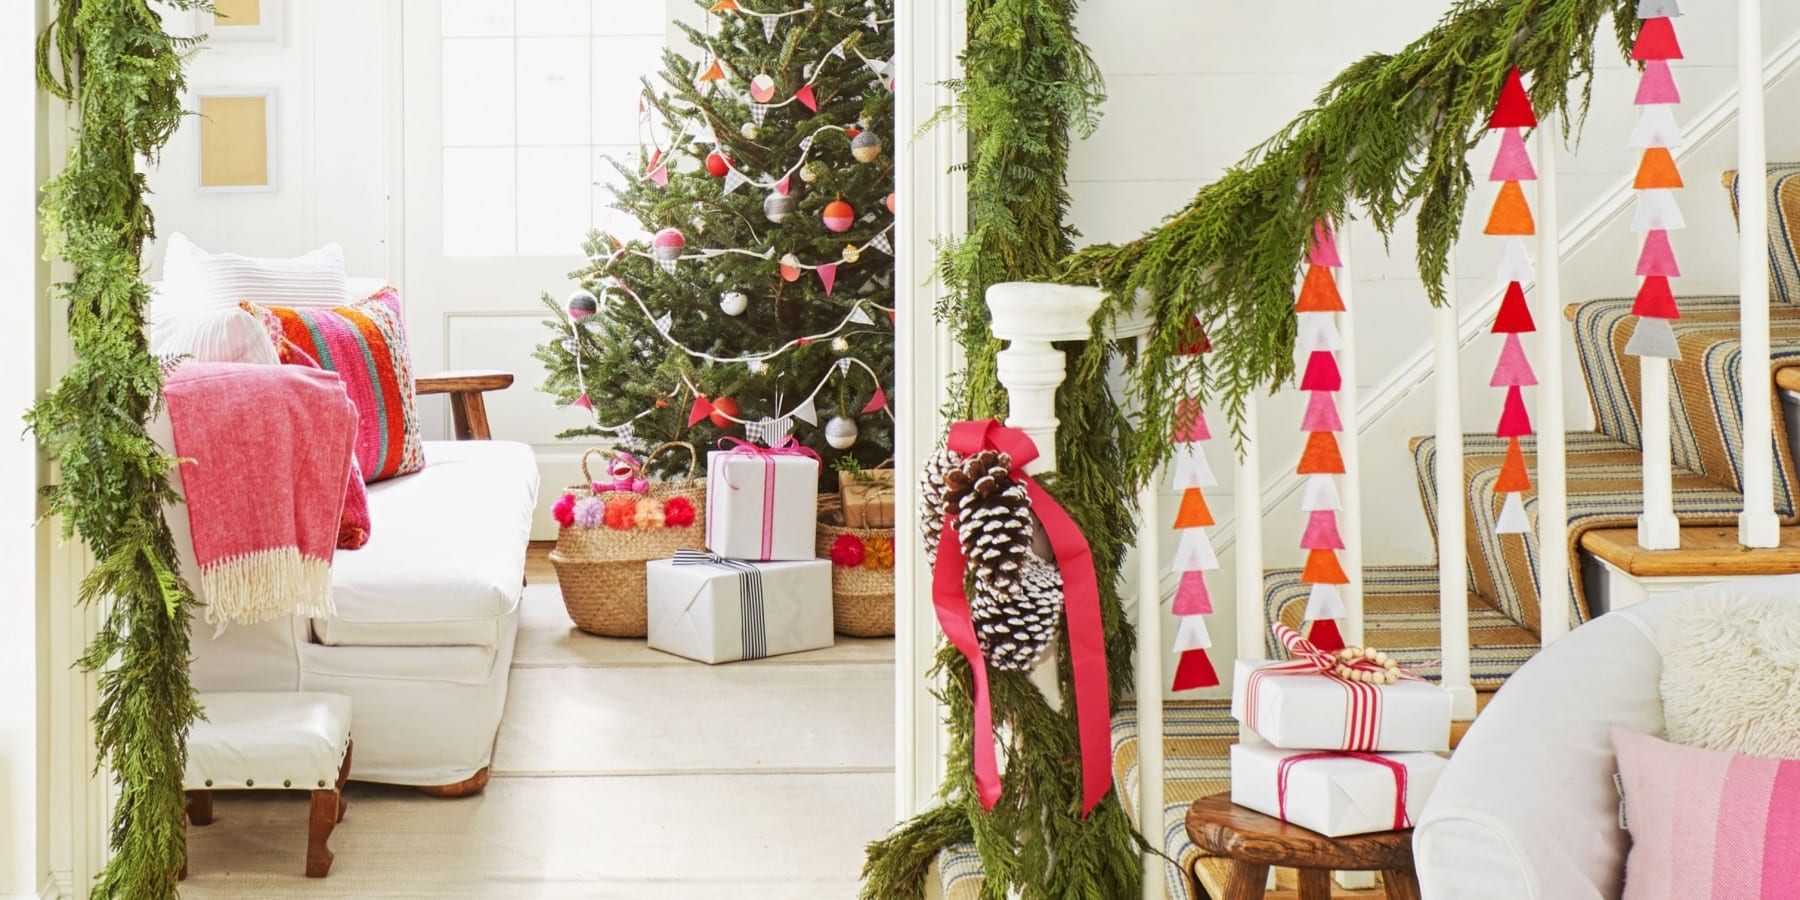 DIY Christmas | Deer Park Self Storage